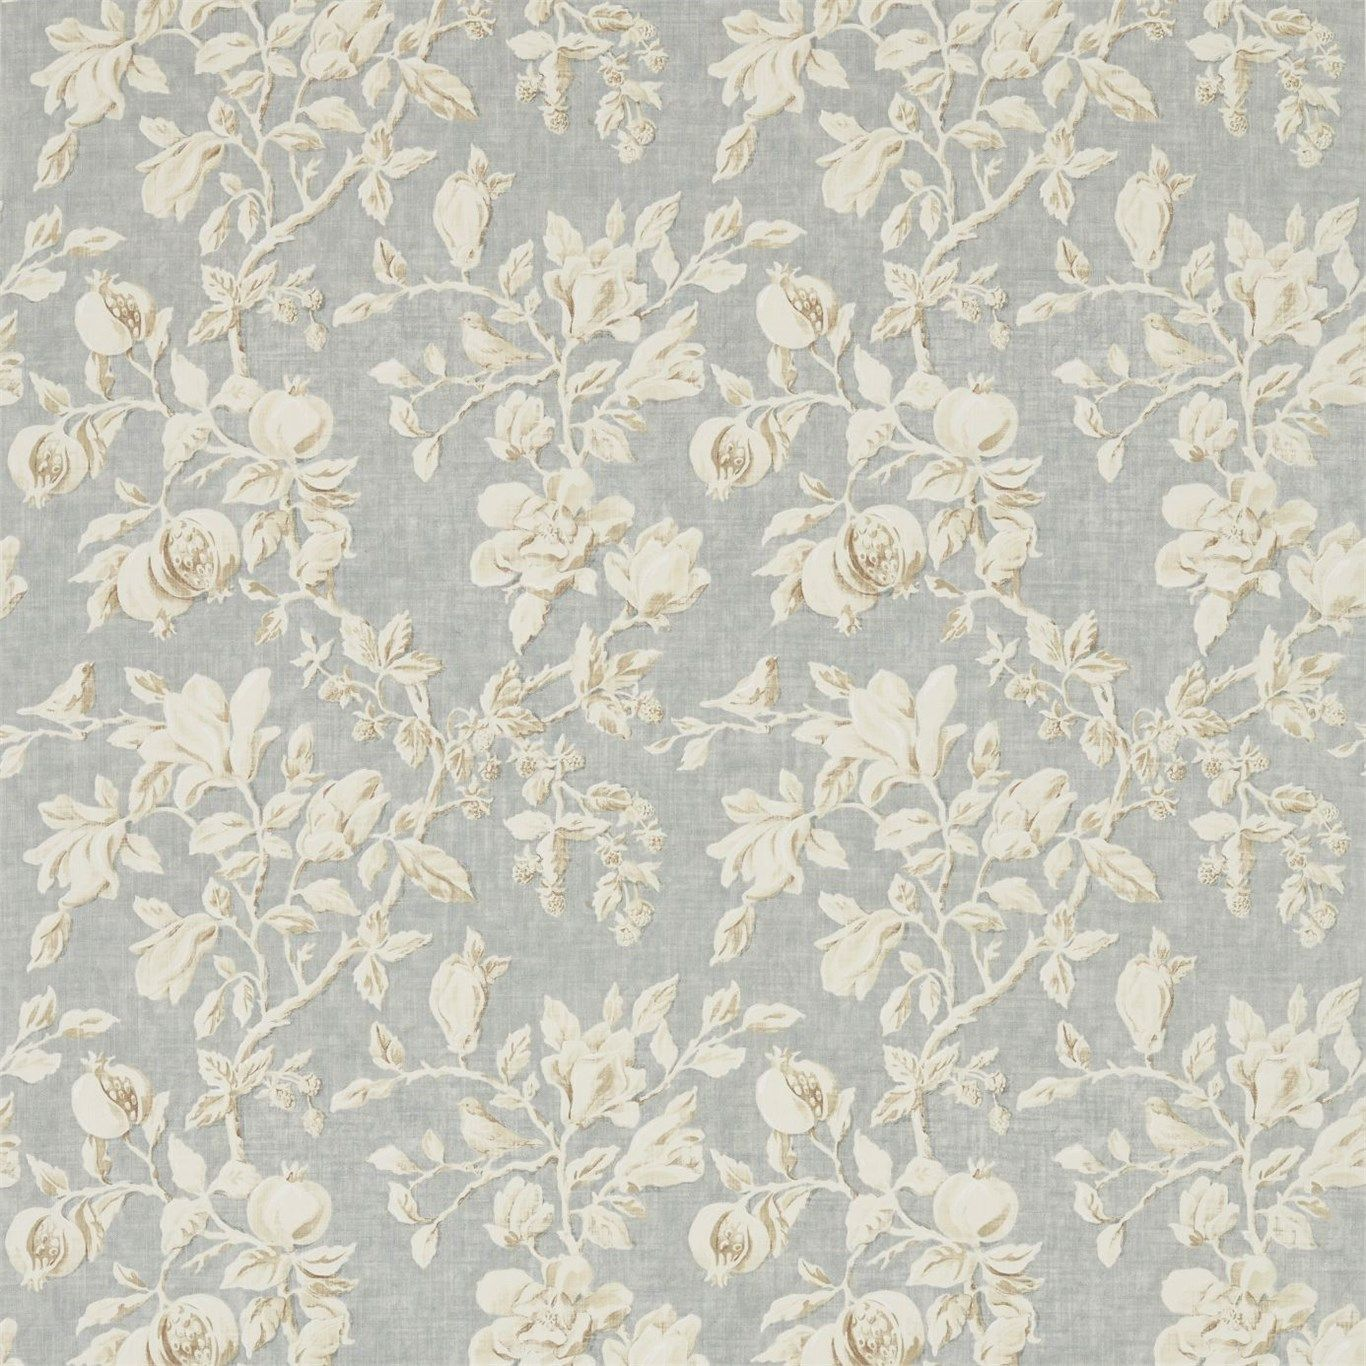 Sanderson Magnolia U0026 Pomegranate 225505 Grey Blue/Parchment Fabric From The  Woodland Walk Collection, Priced Per Metre. A Magnificent, Large Scale, ...